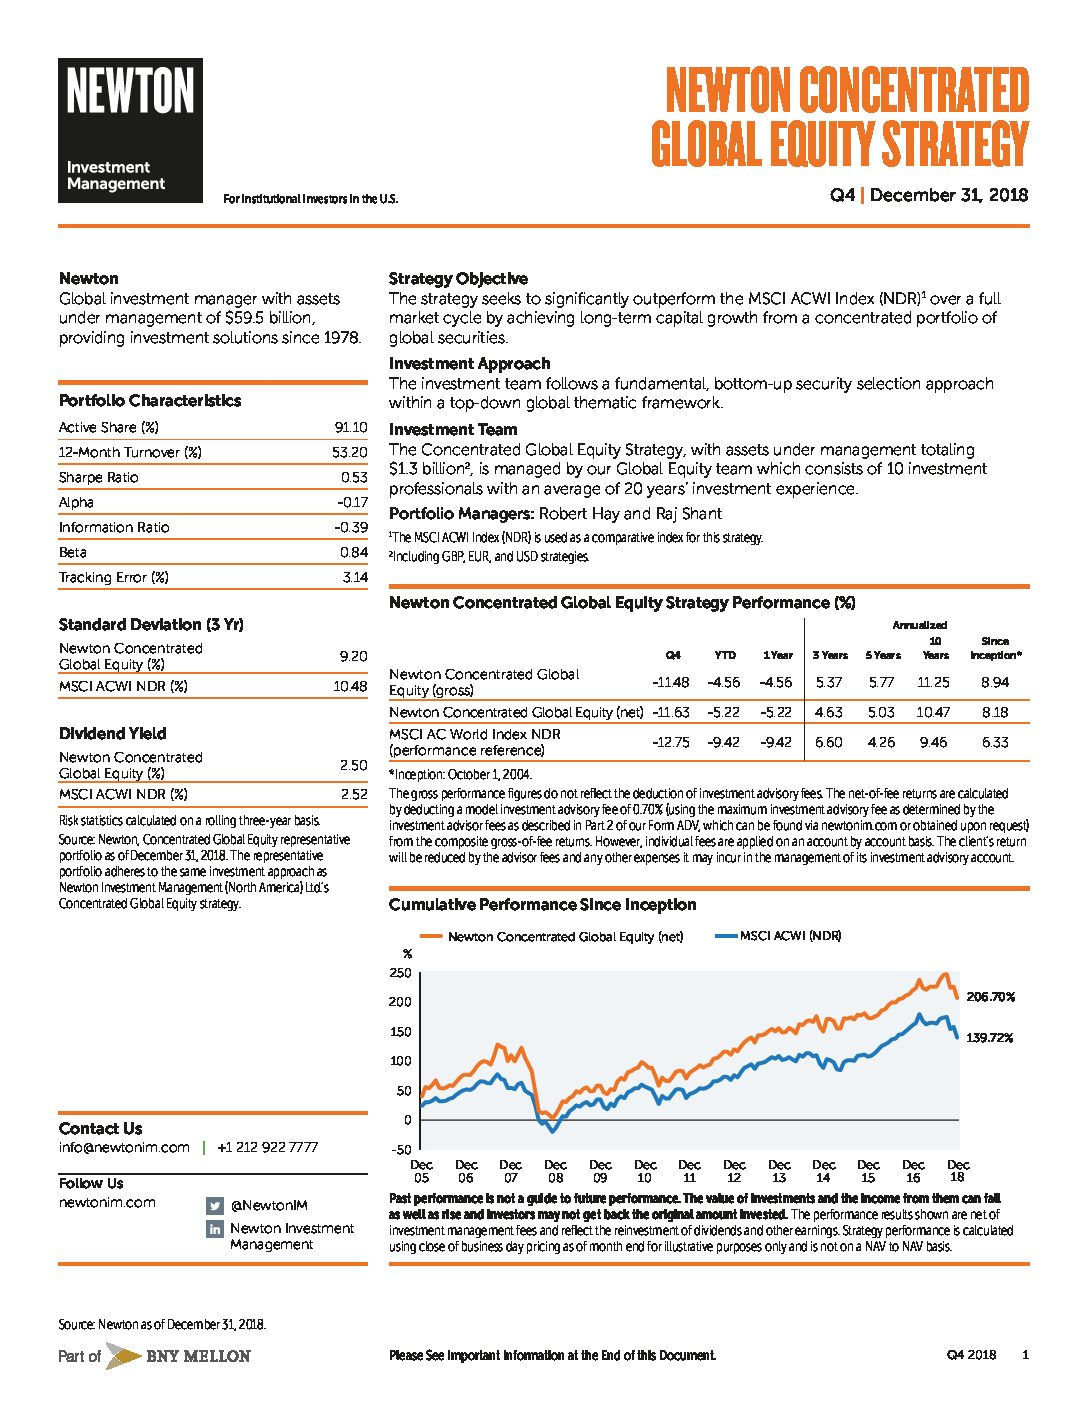 NIMNA Concentrated Global Equity strategy factsheet